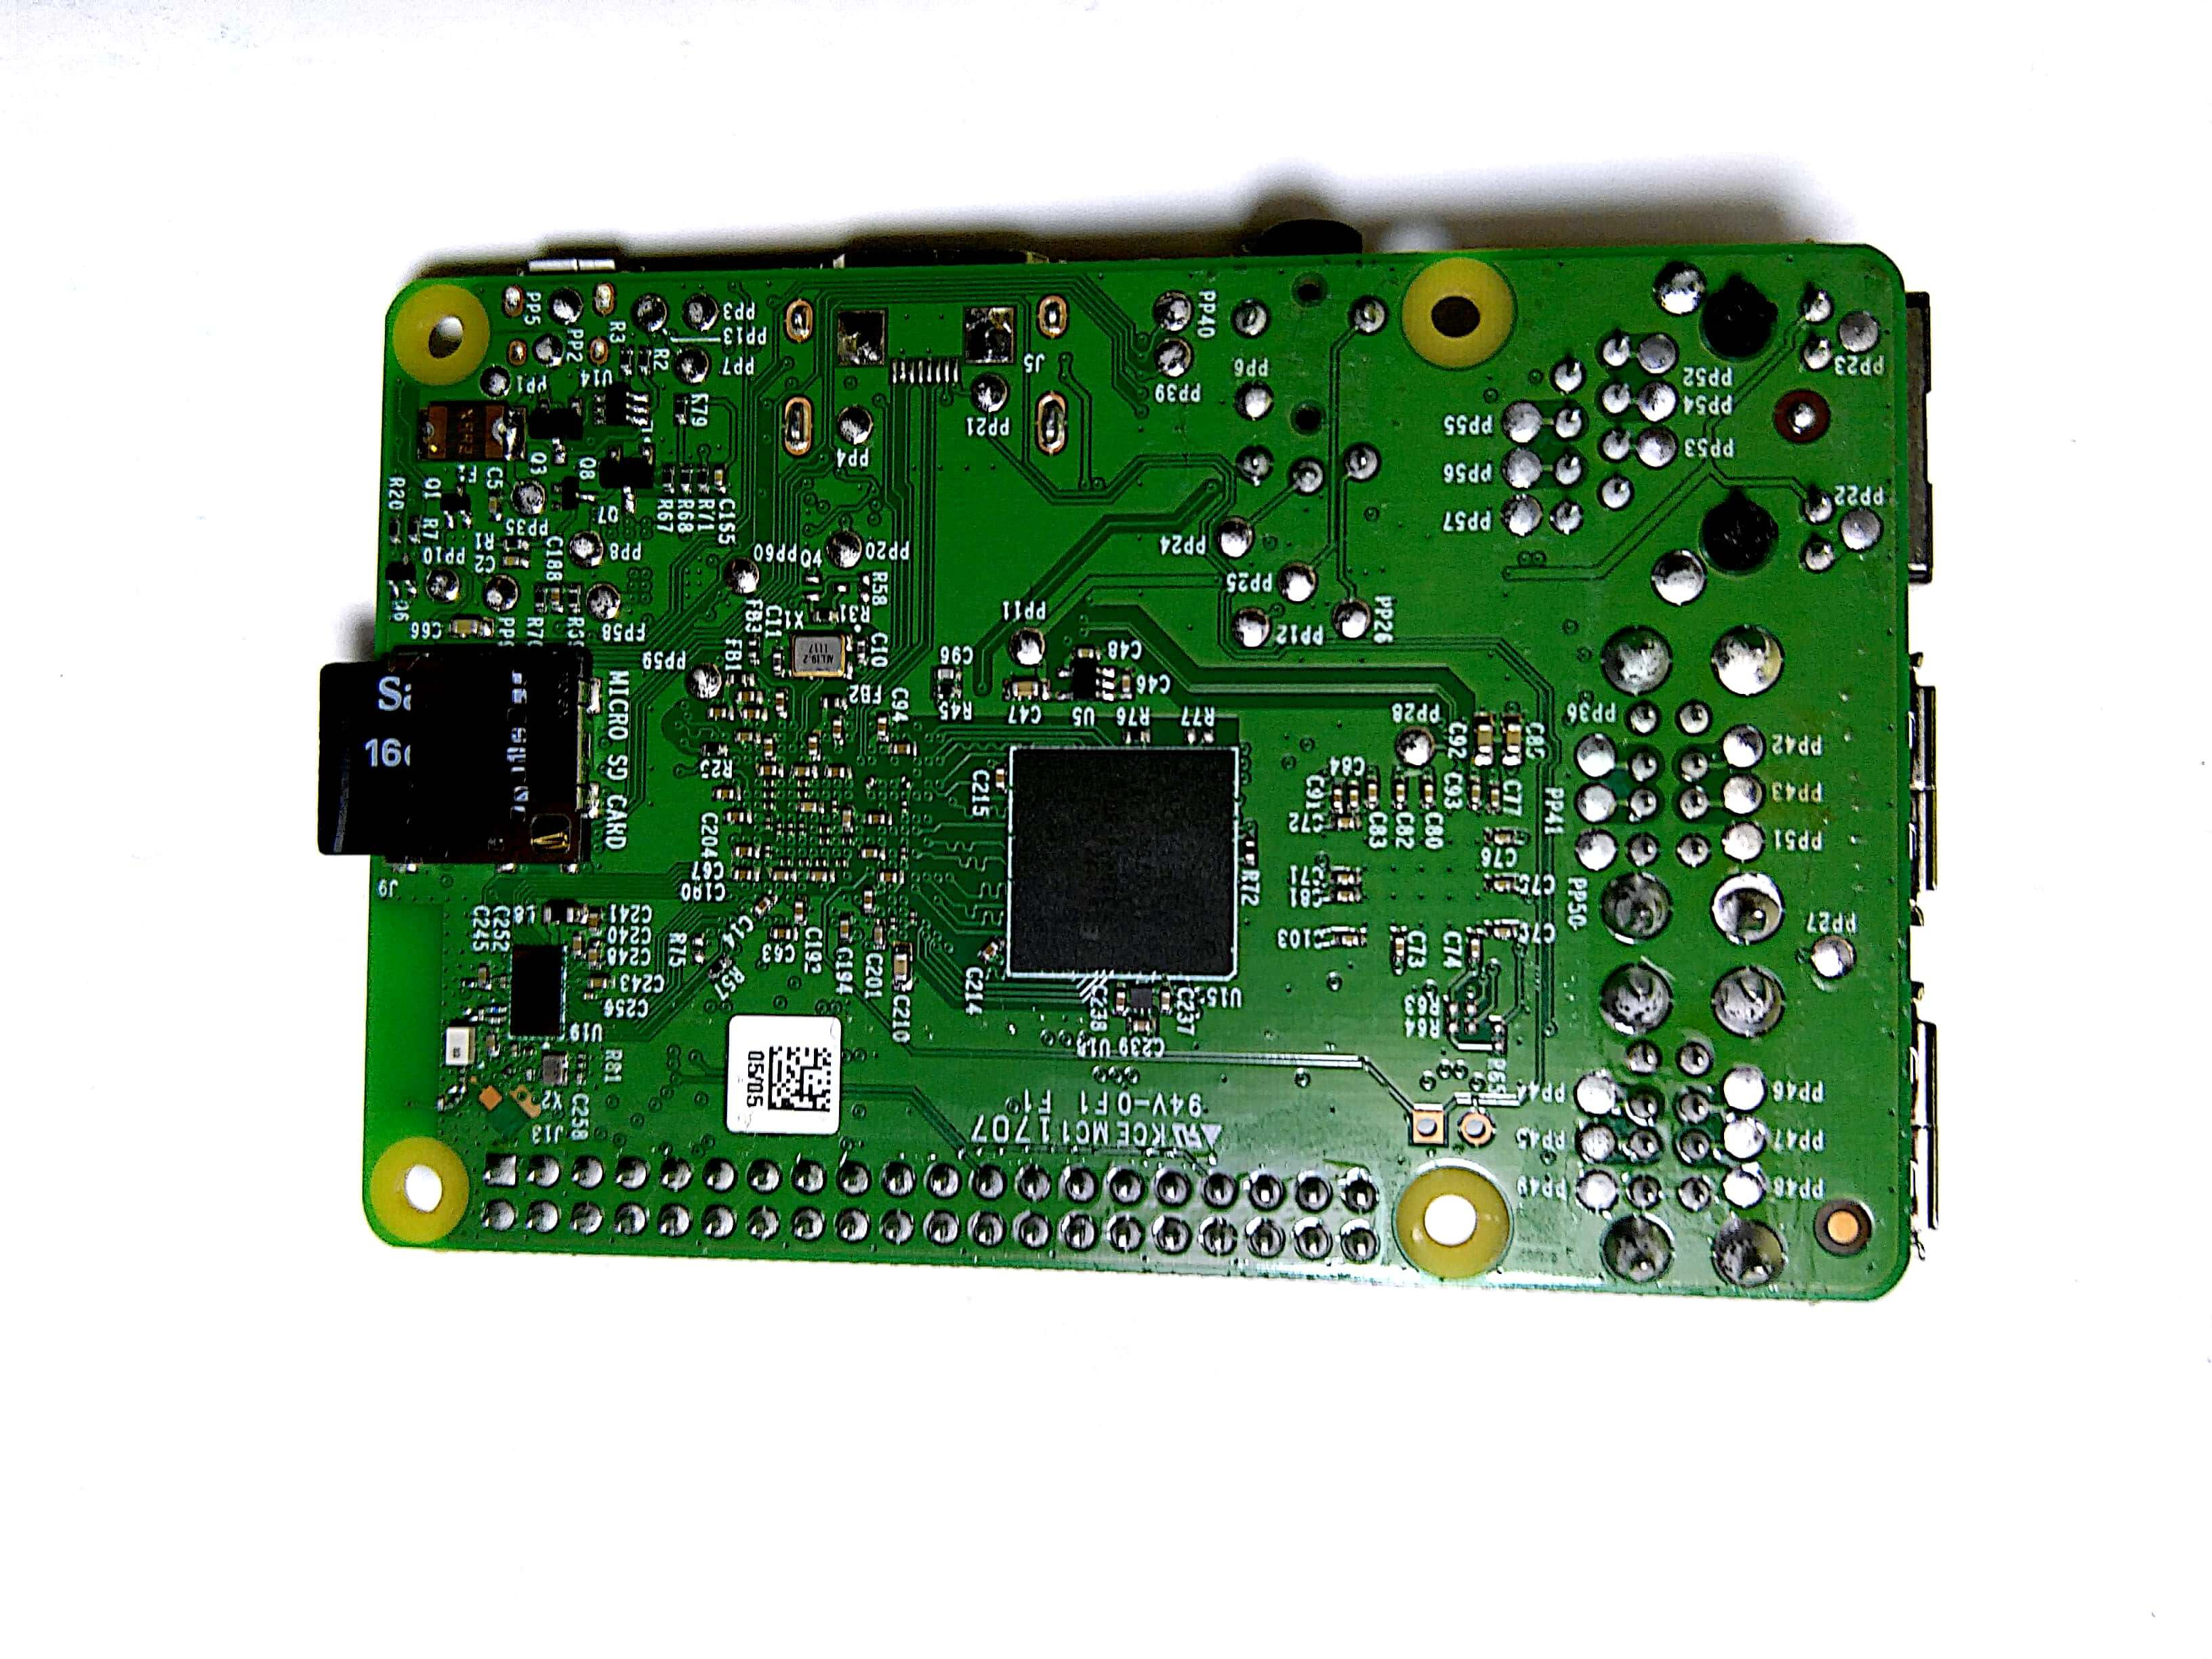 Insert memory card in the raspberry pi